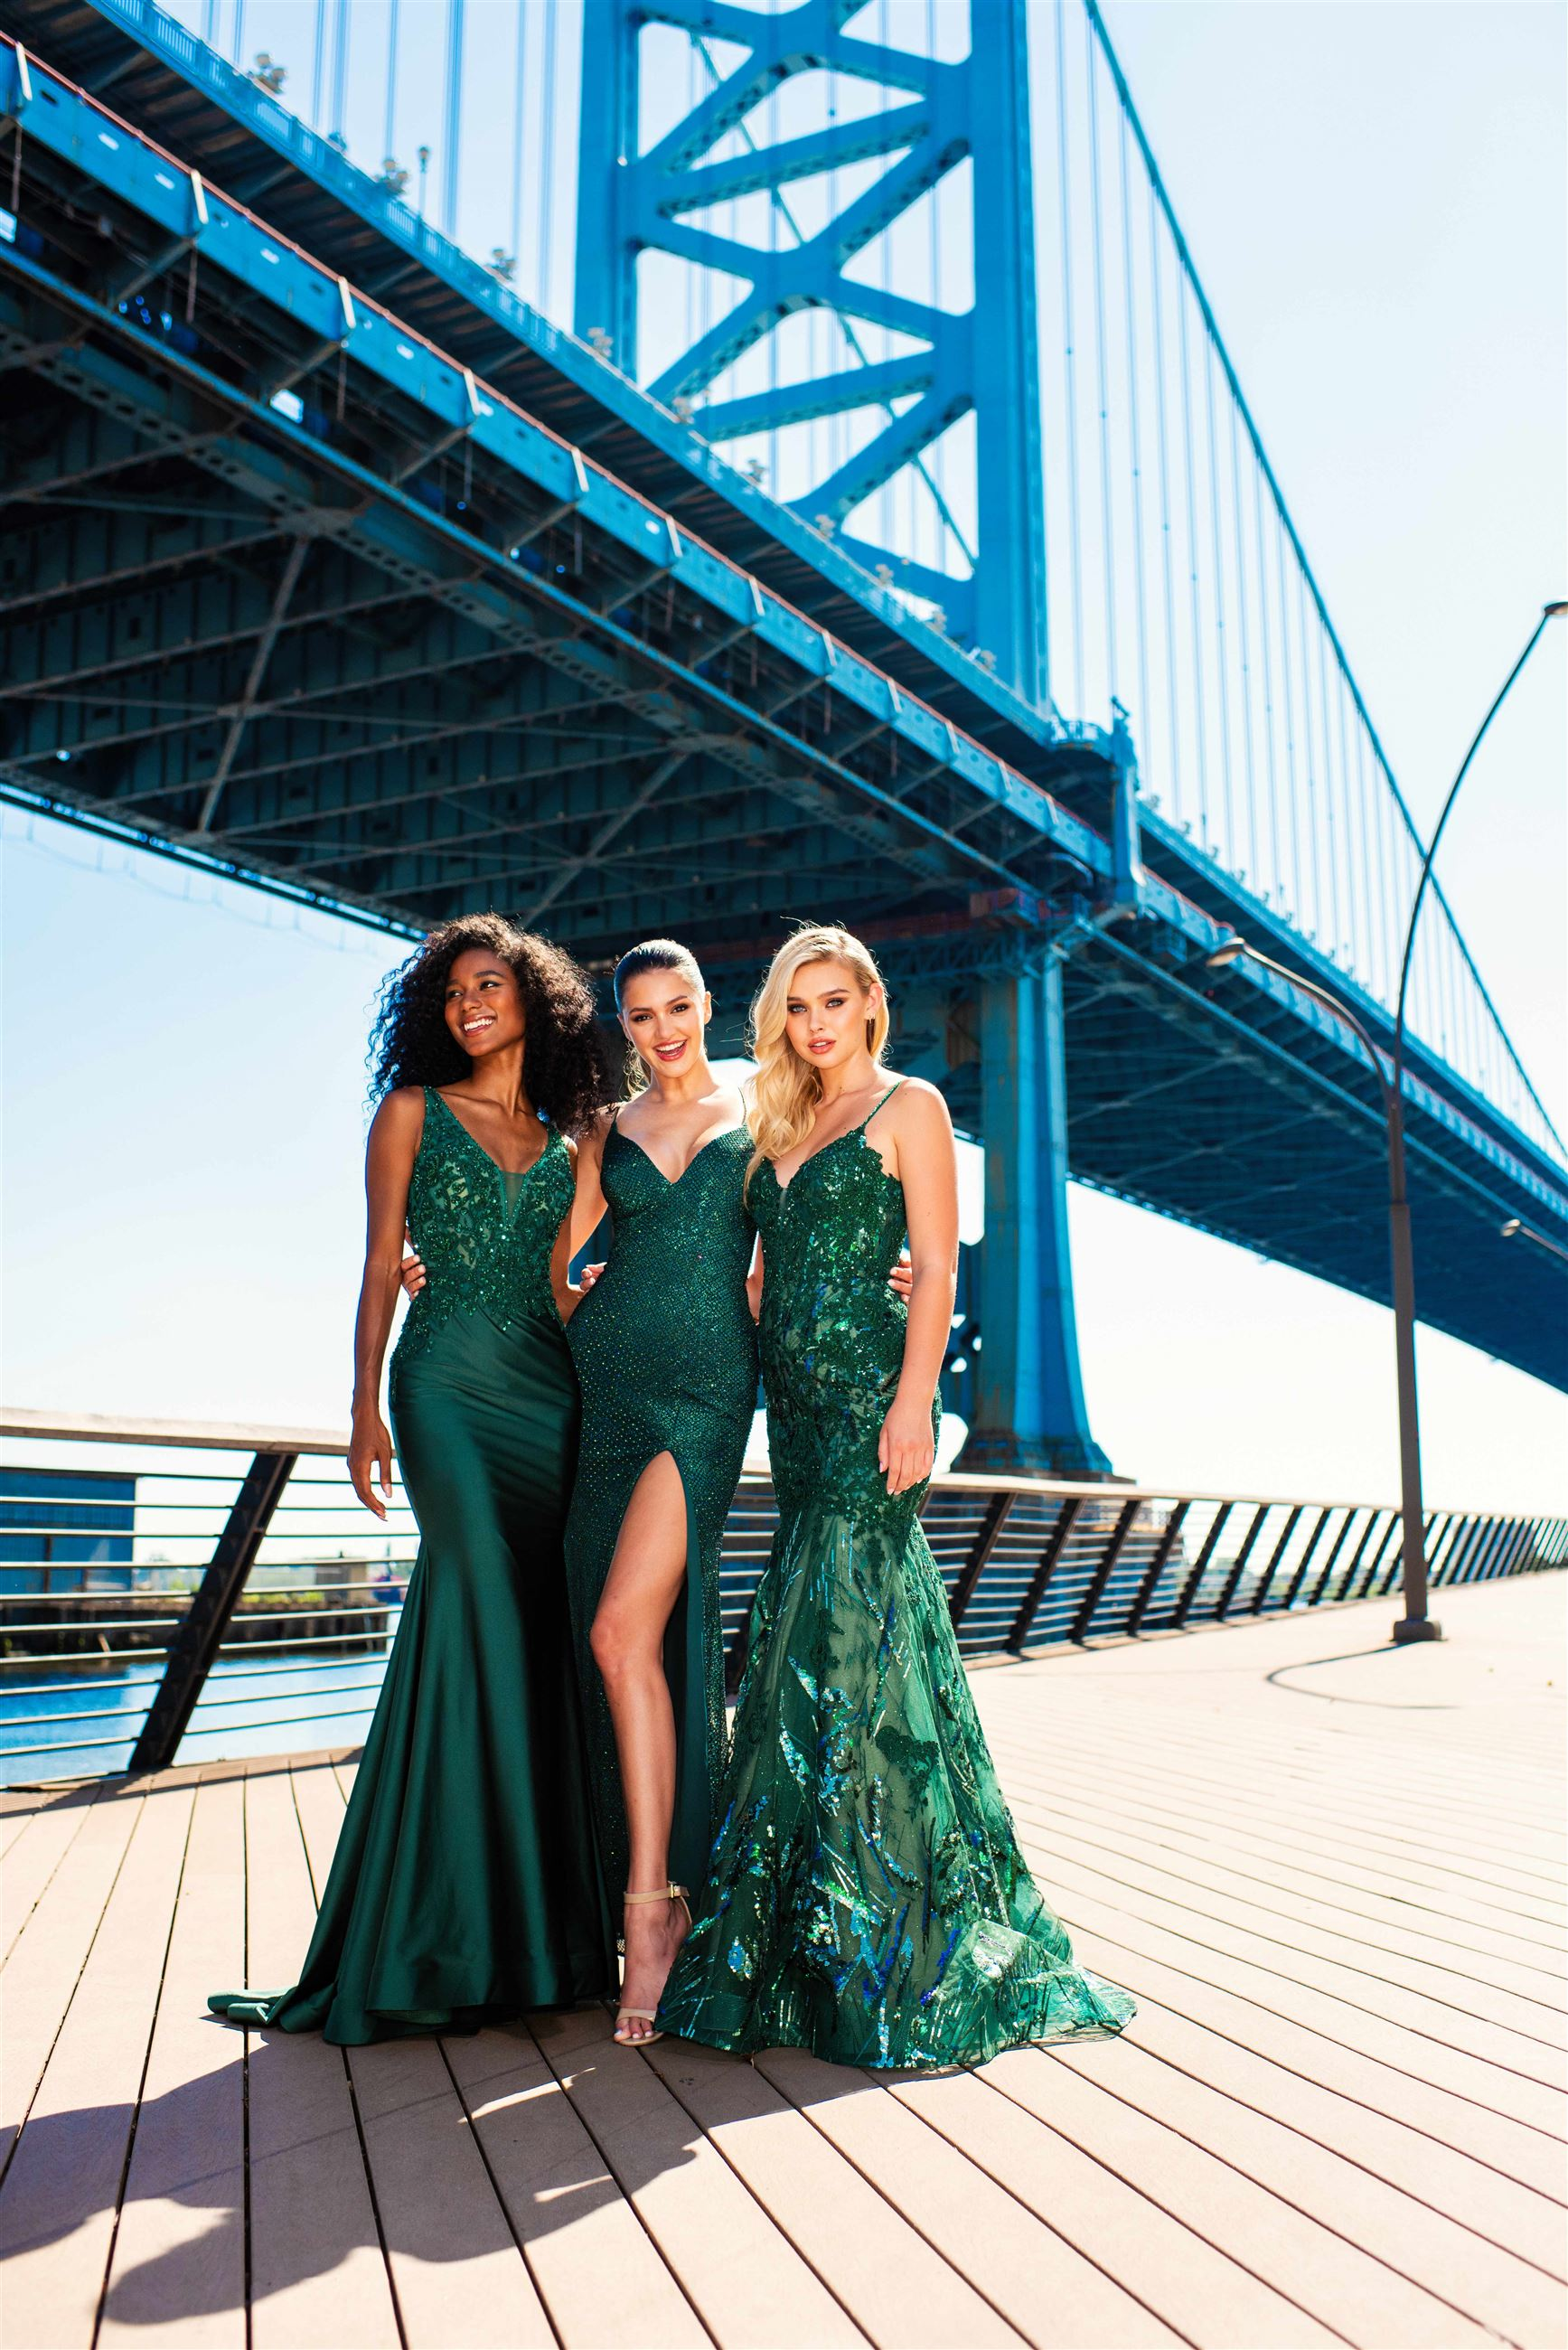 Three girls wearing green prom dresses by Ellie Wilde